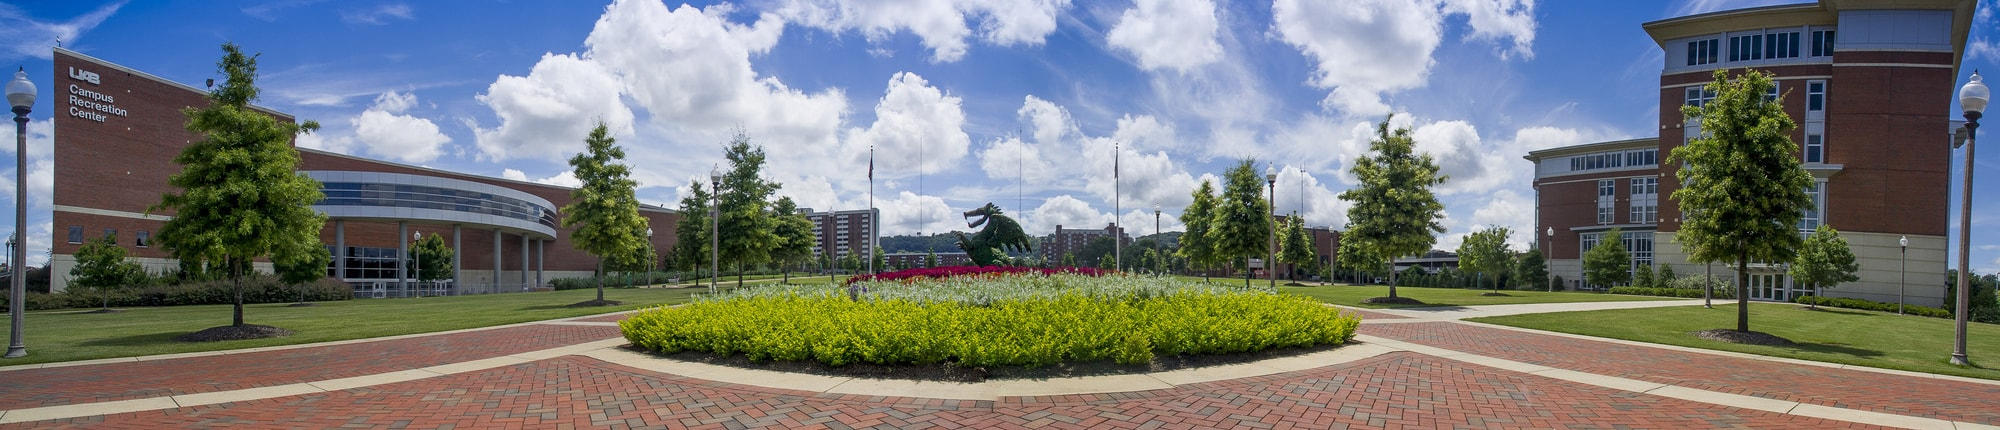 uab campus green